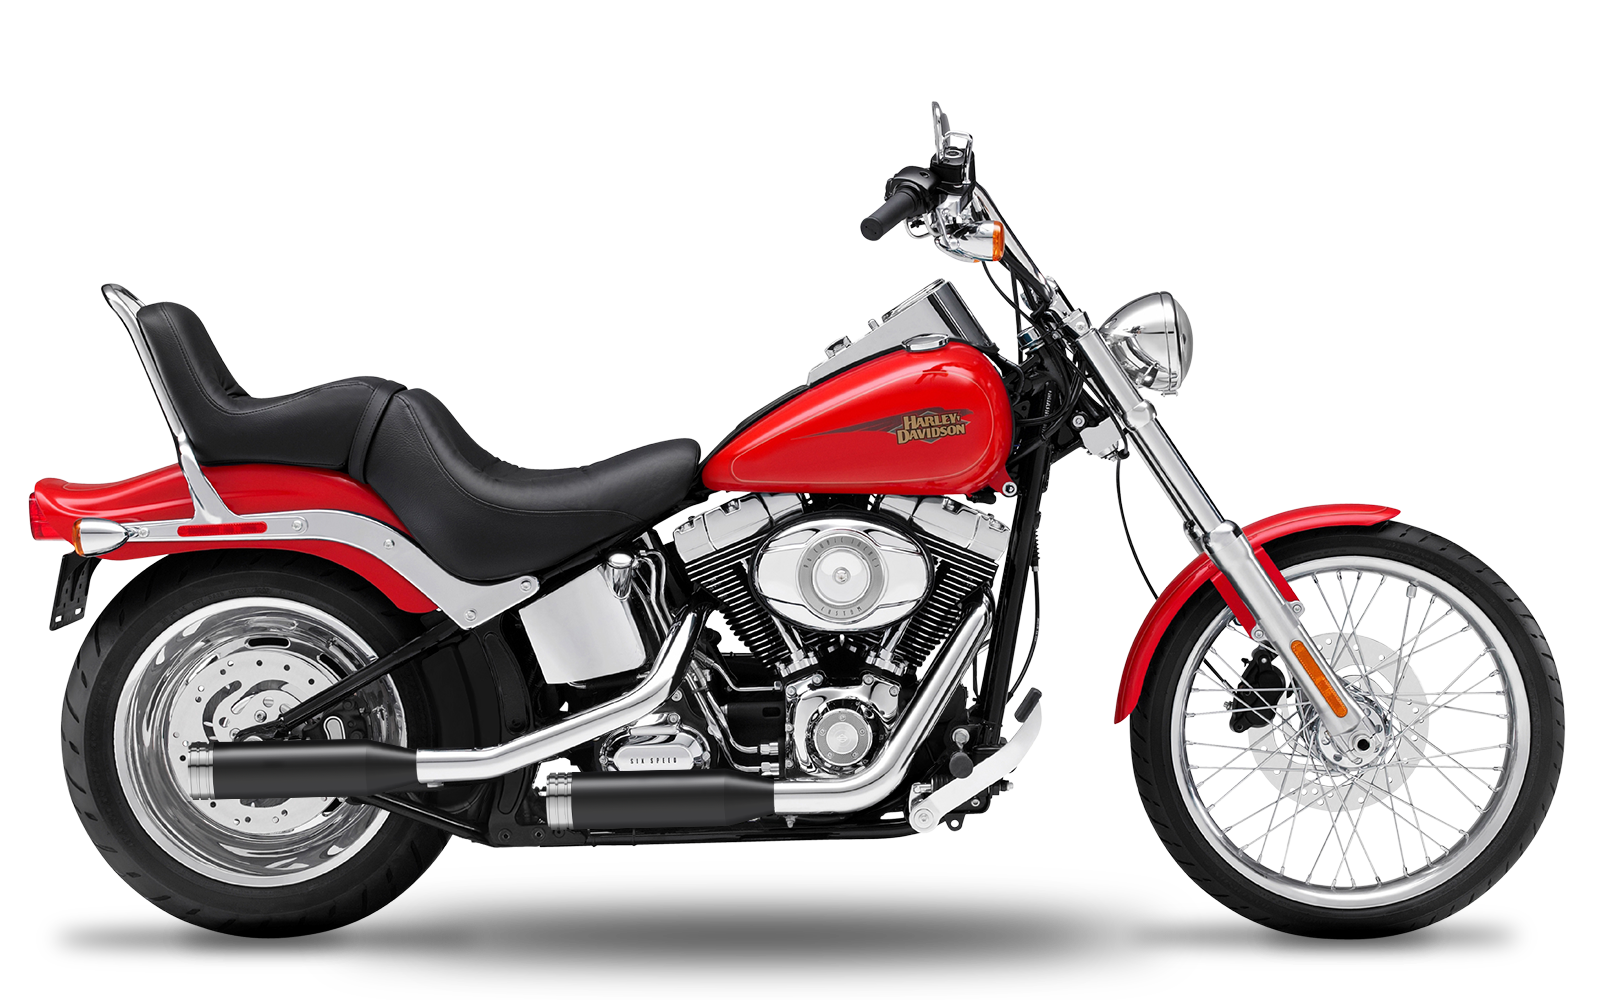 Softail - Standard - Evolution - -1999 - Slipons